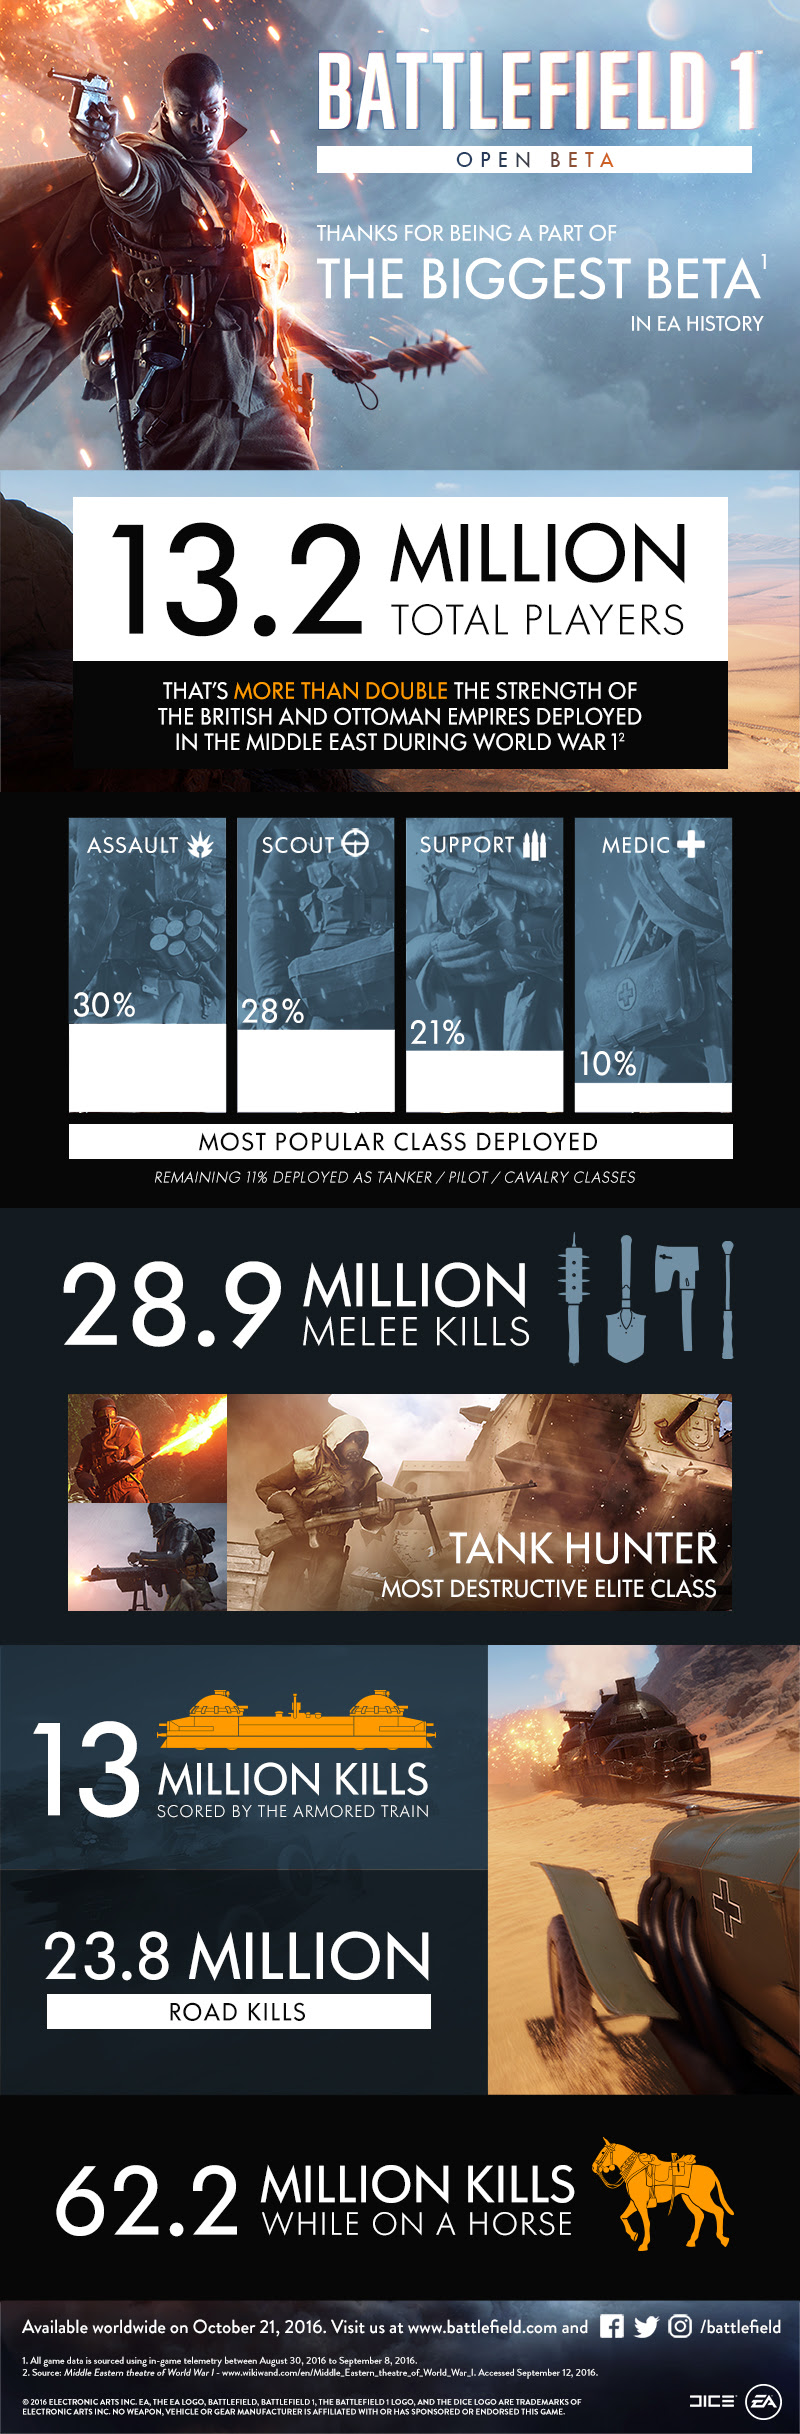 Battlefield 1 beta official infographic, from the largest online beta test ever.